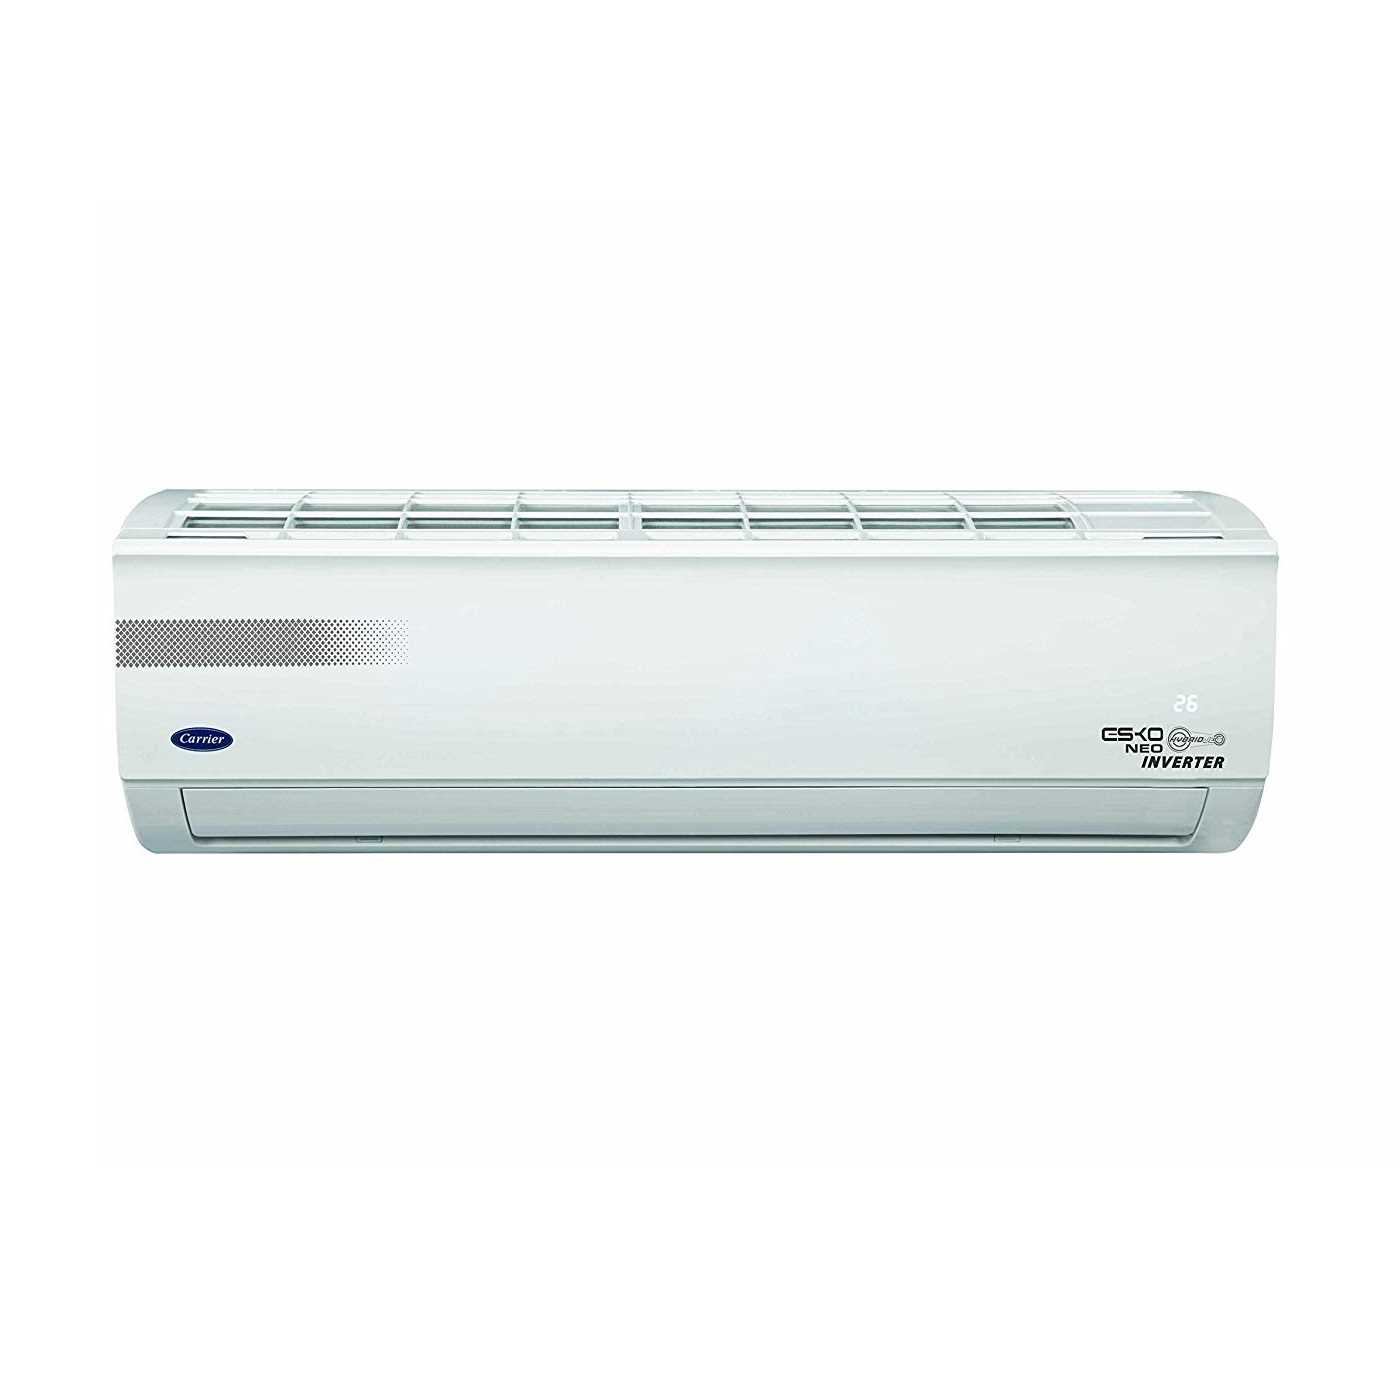 Carrier 18K Esko Neo 1.5 Ton 5 Star Inverter Split AC